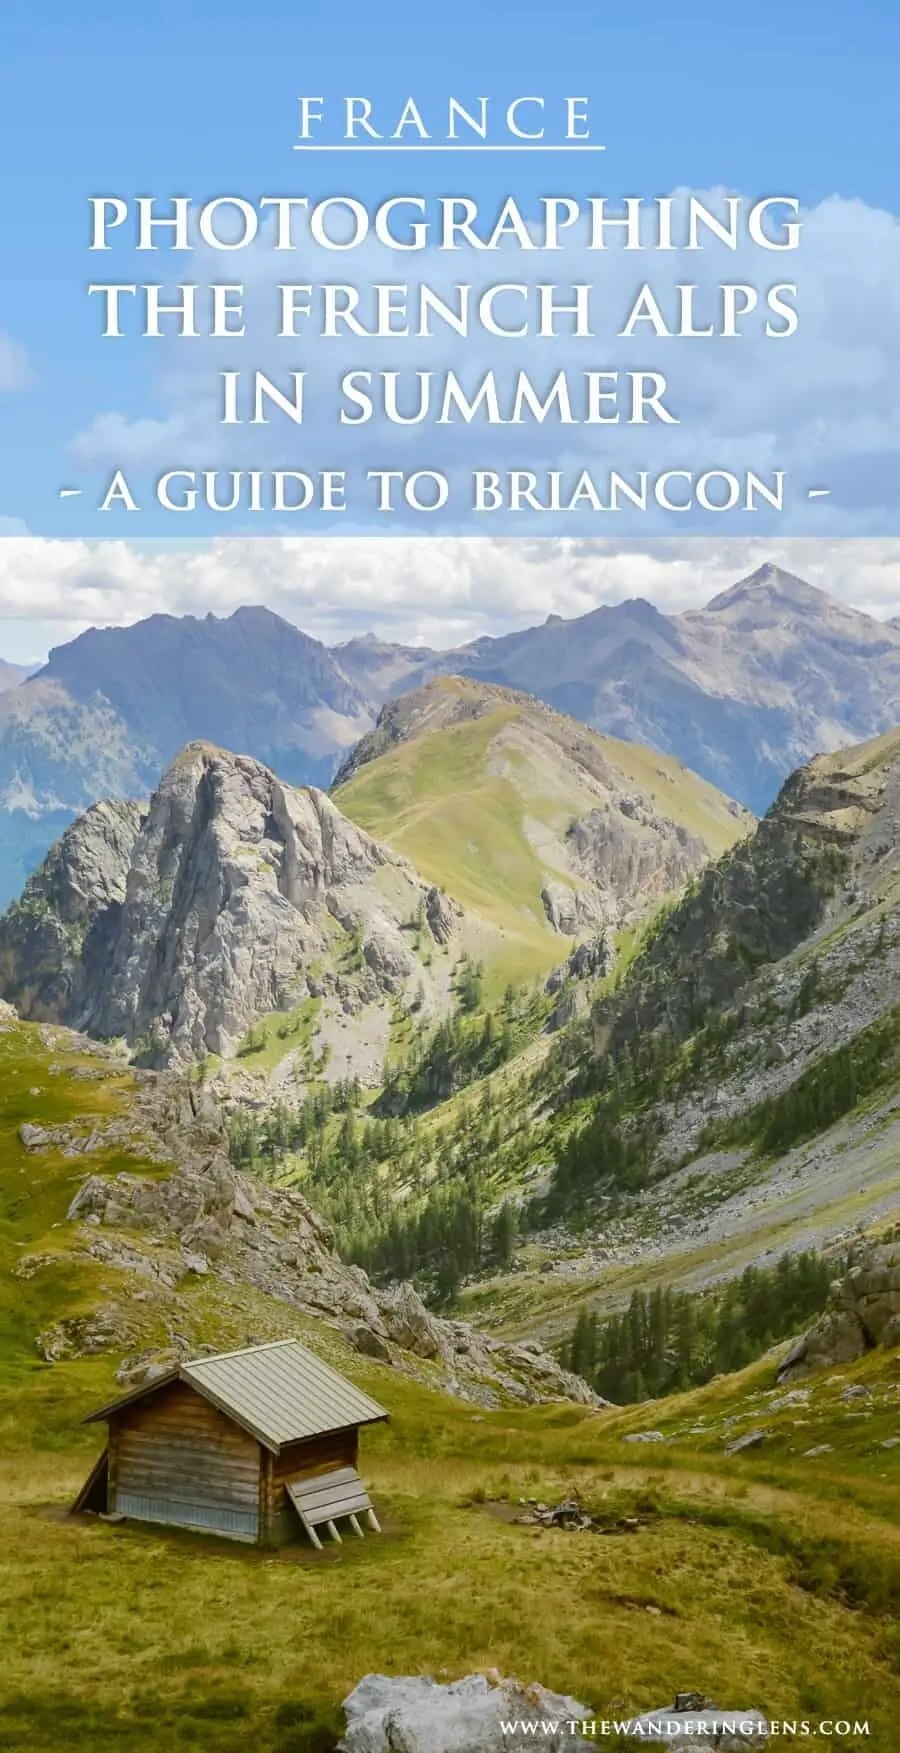 French Alps in Summer - A Guide to Photography Locations in Briancon, France